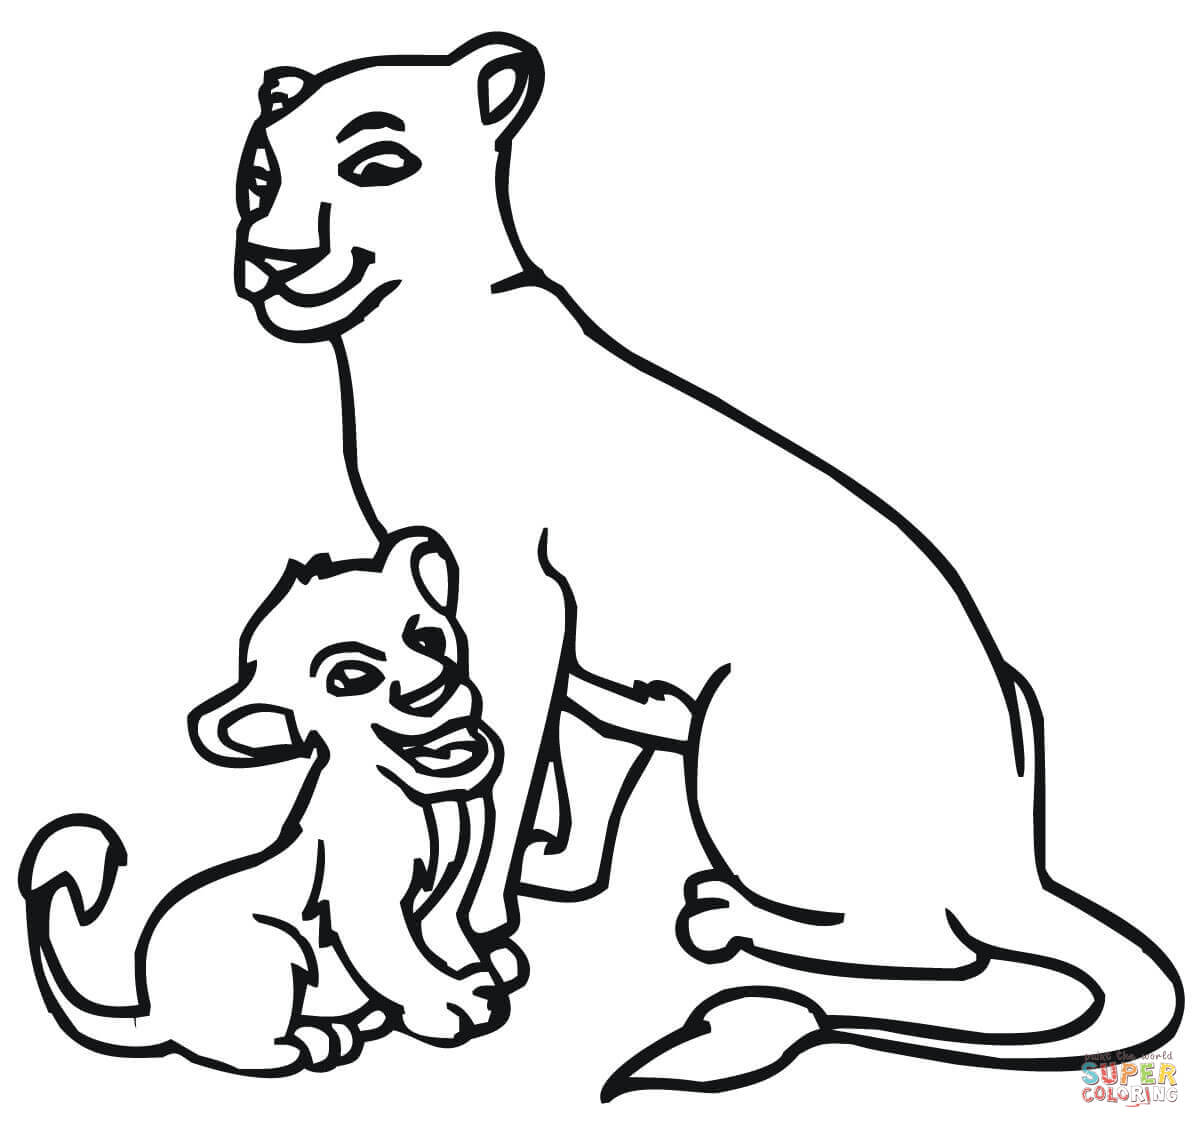 Lion Coloring Pages | Free download best Lion Coloring Pages on ...